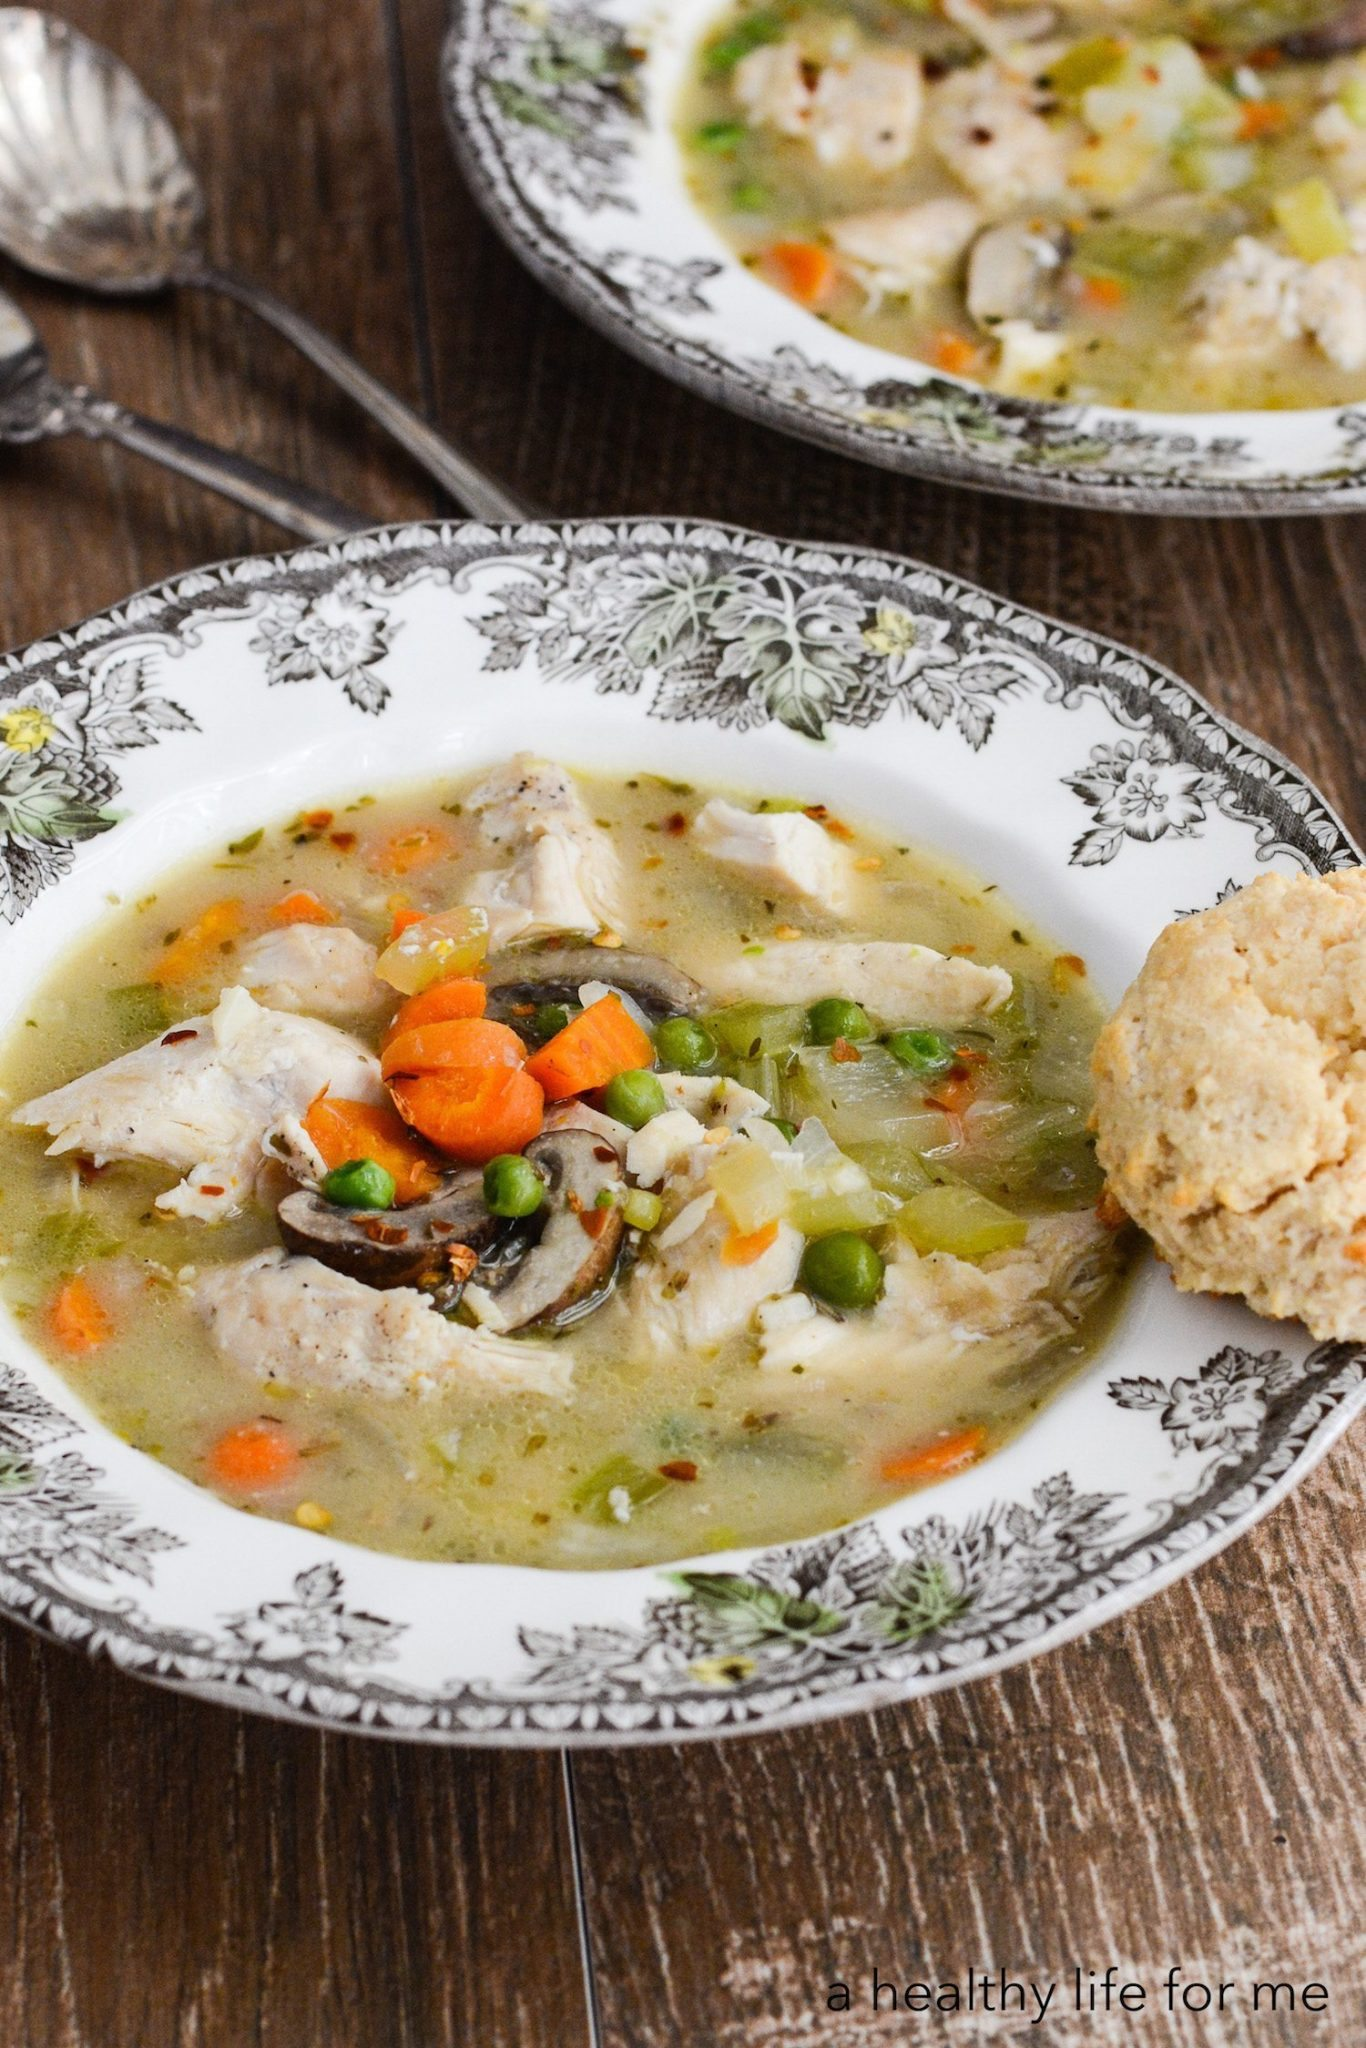 Paleo chicken and dumplings a healthy life for me paleo chicken and dumplings is a hearty one pot dinner that will satisfy the whole family forumfinder Gallery